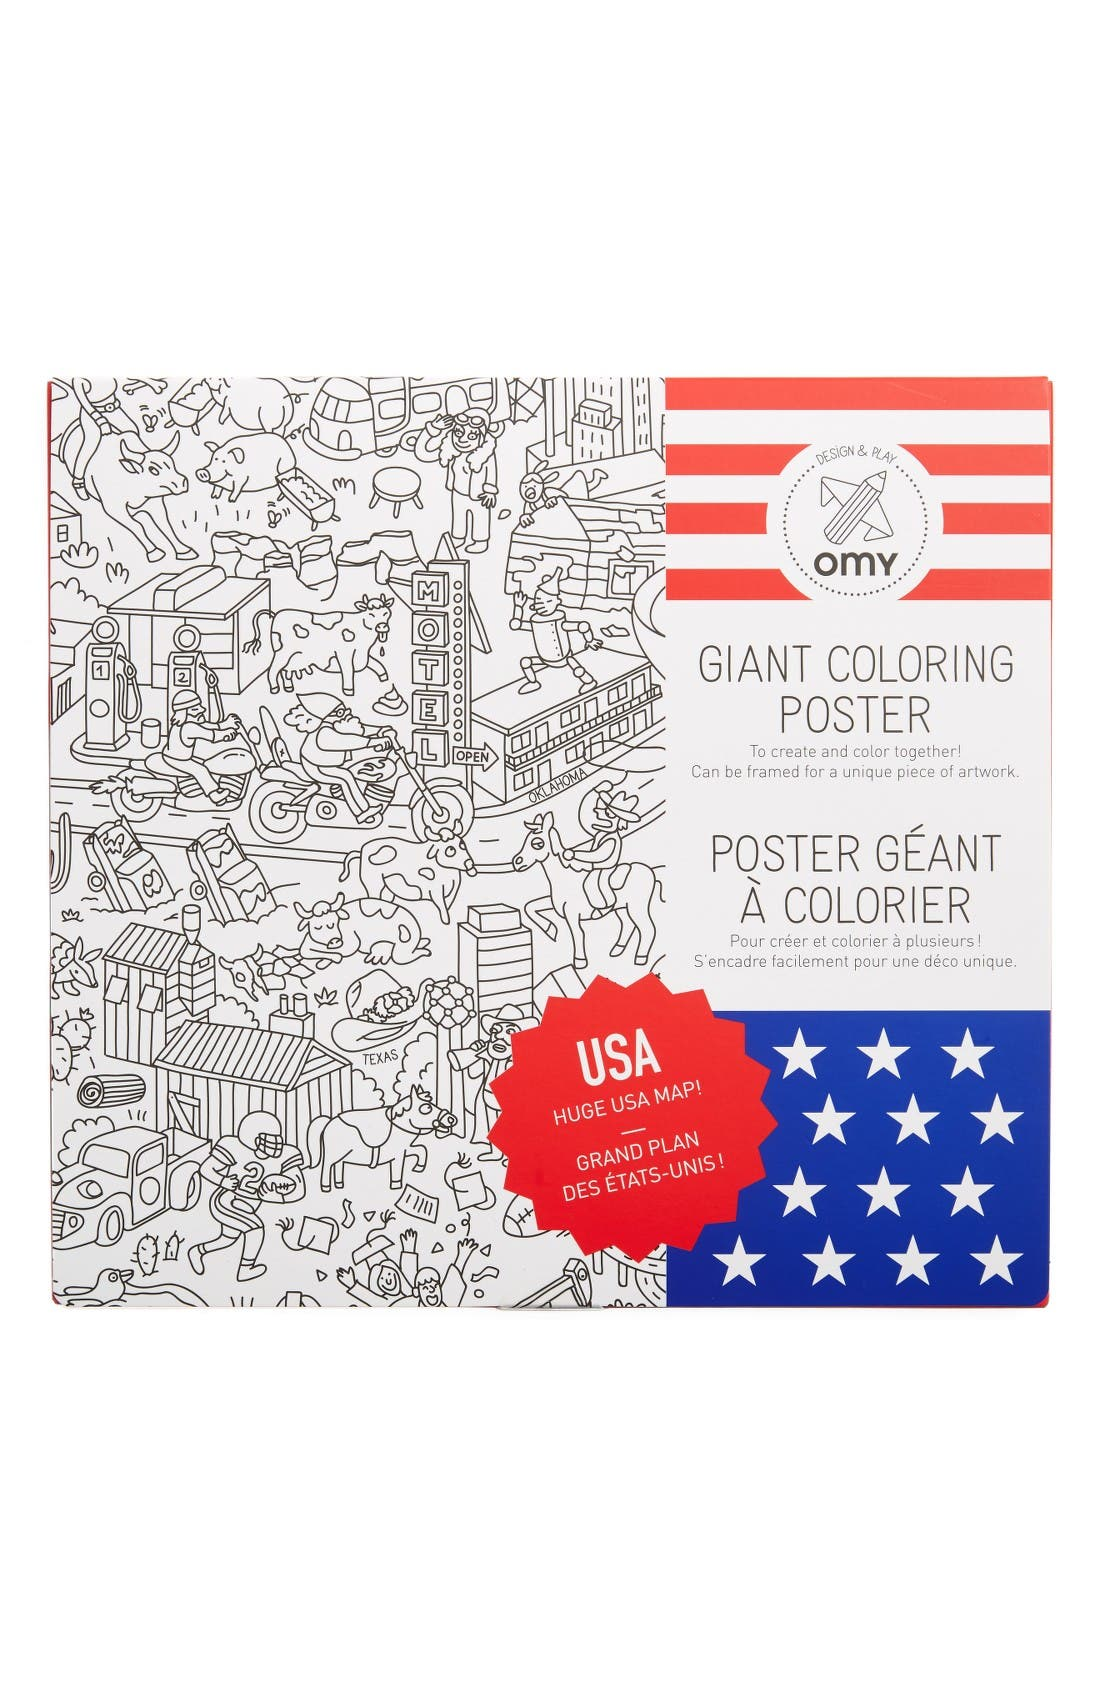 OMY USA Giant Coloring Poster